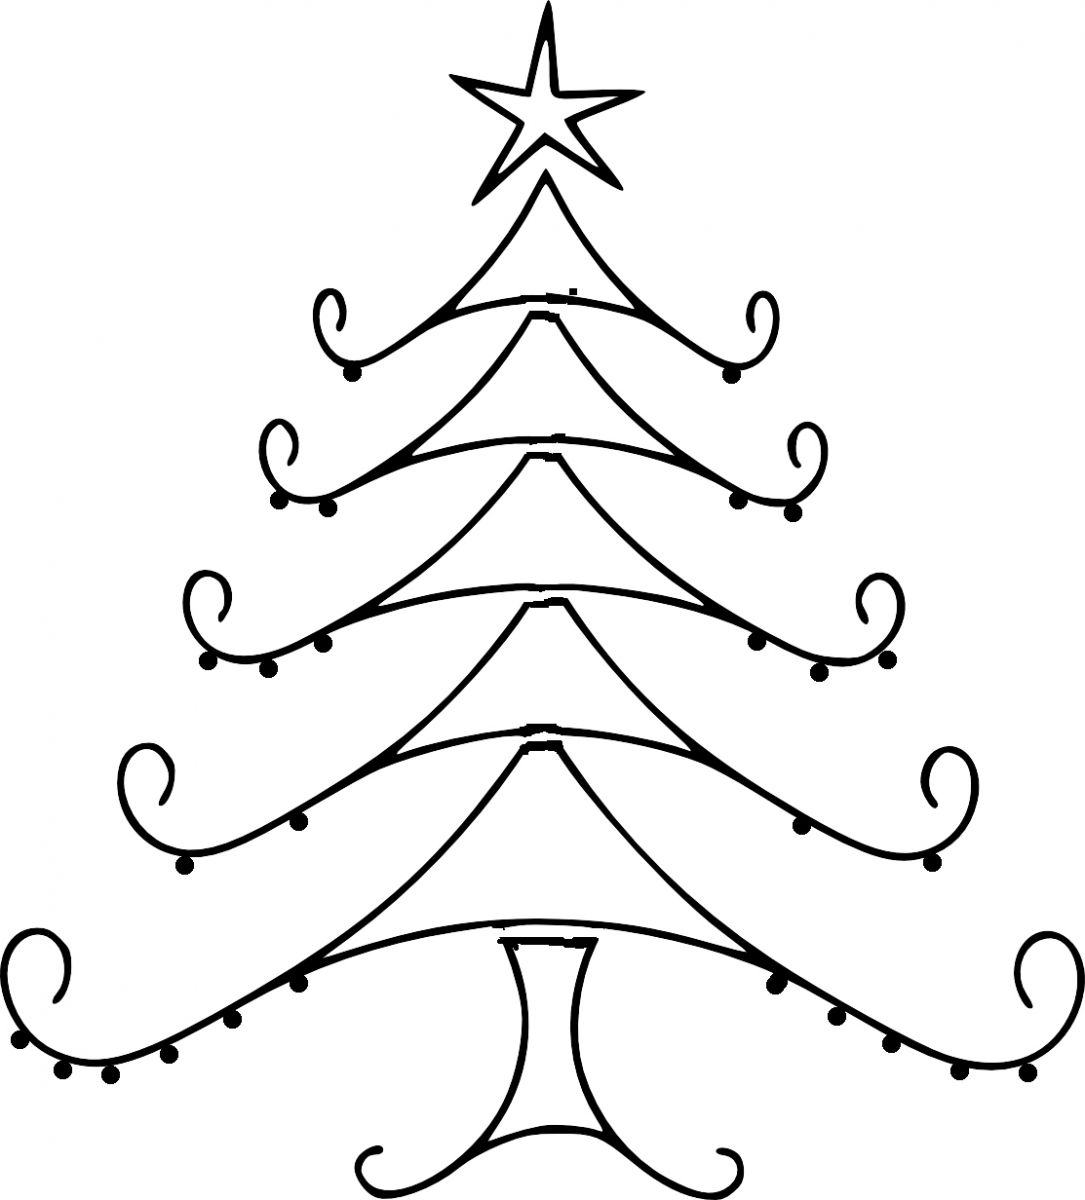 Free Christmas Tree Line Drawing, Download Free Clip Art, Free Clip.